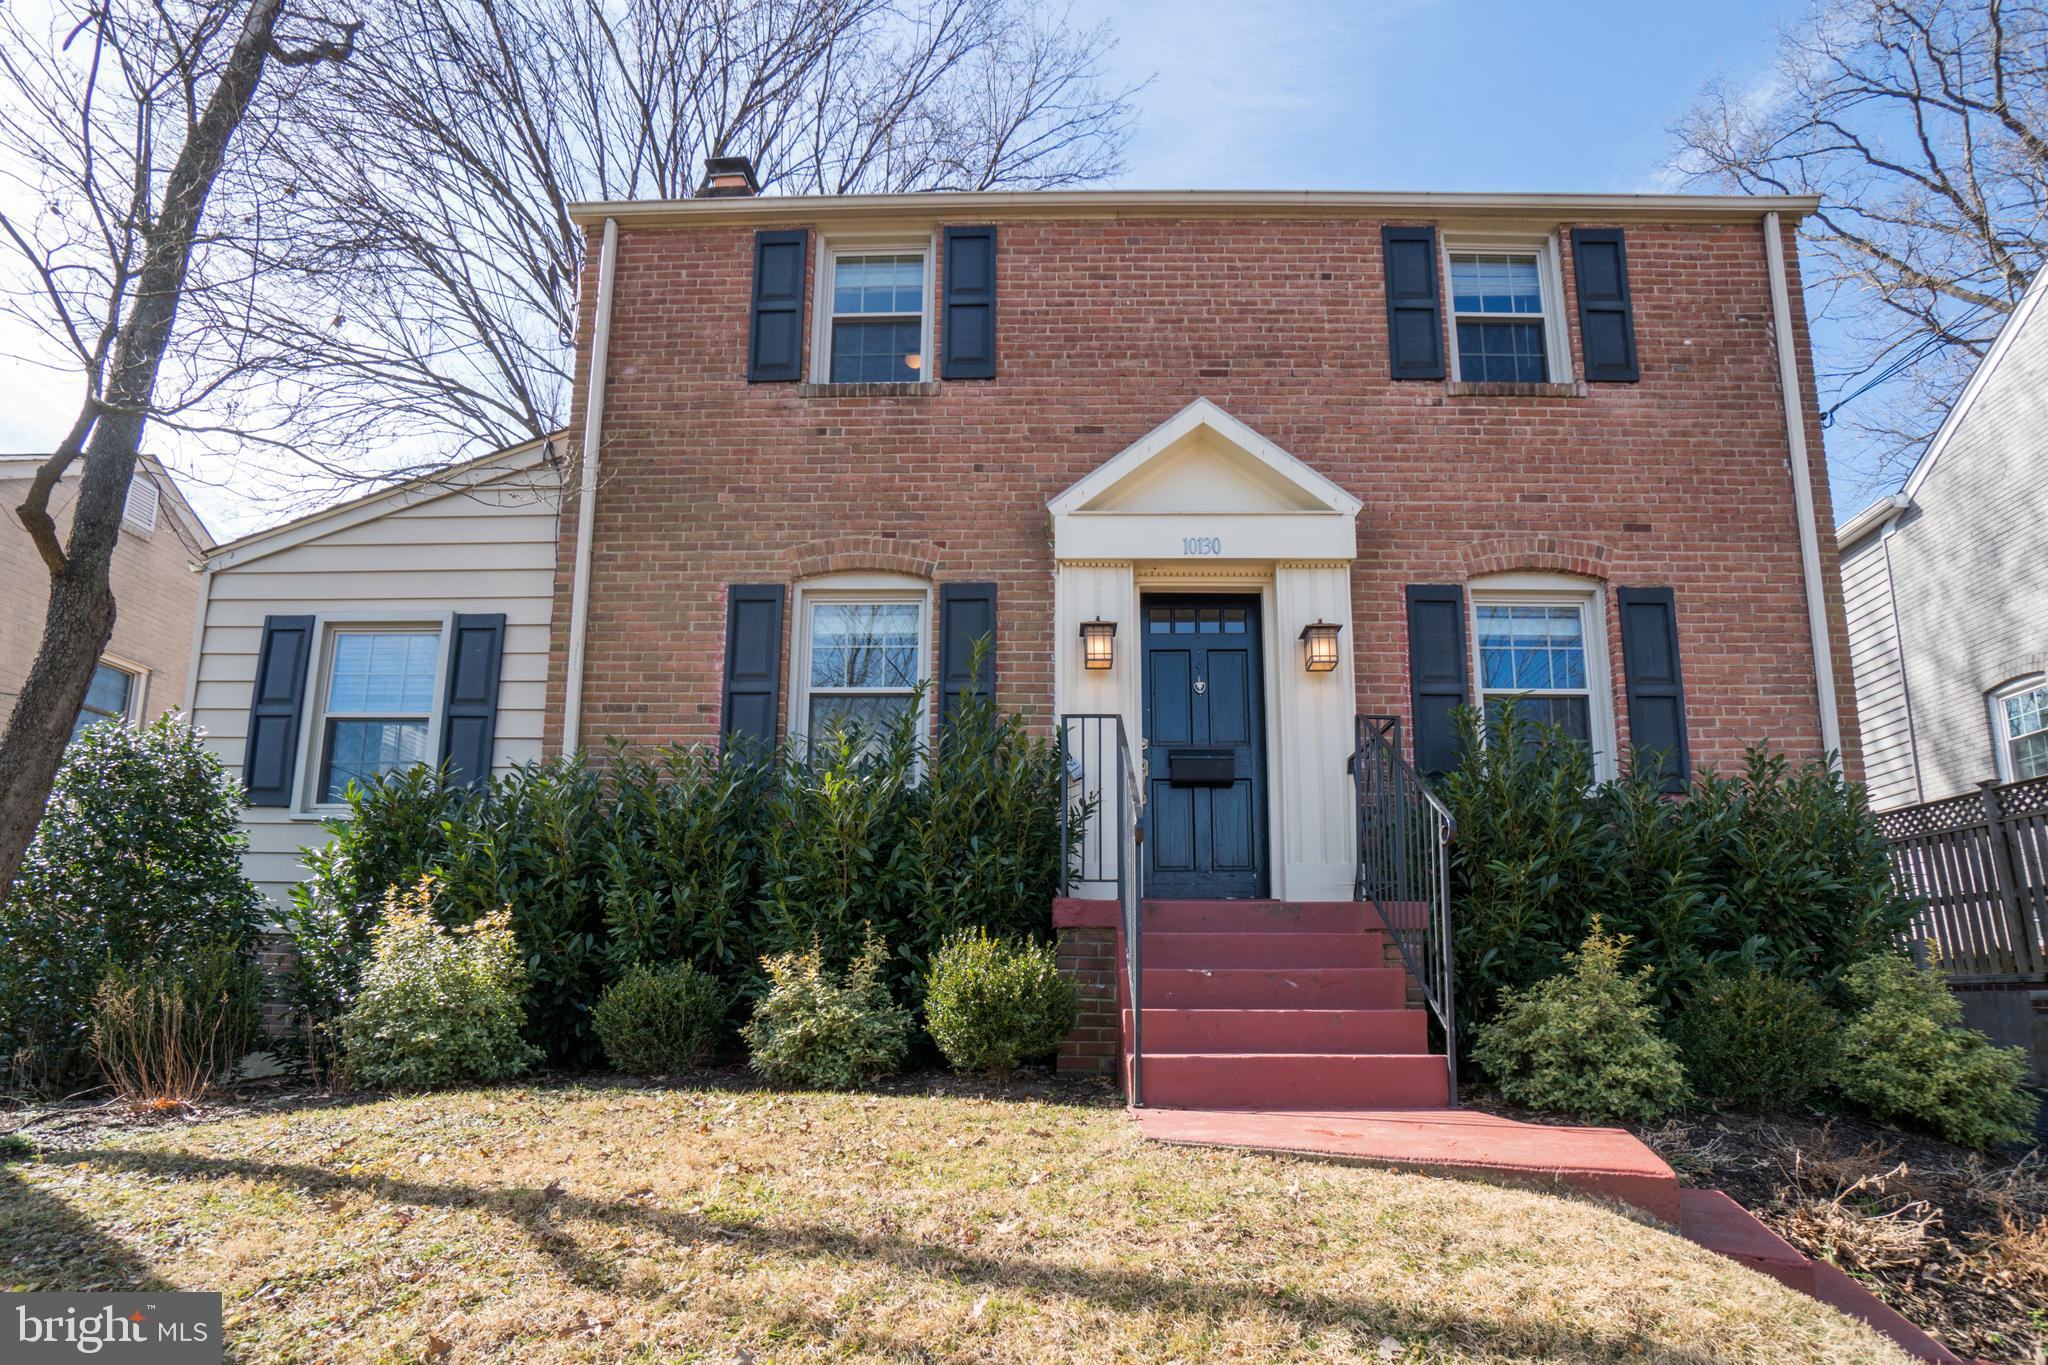 10130 BROOKMOOR DRIVE, SILVER SPRING, MD 20901